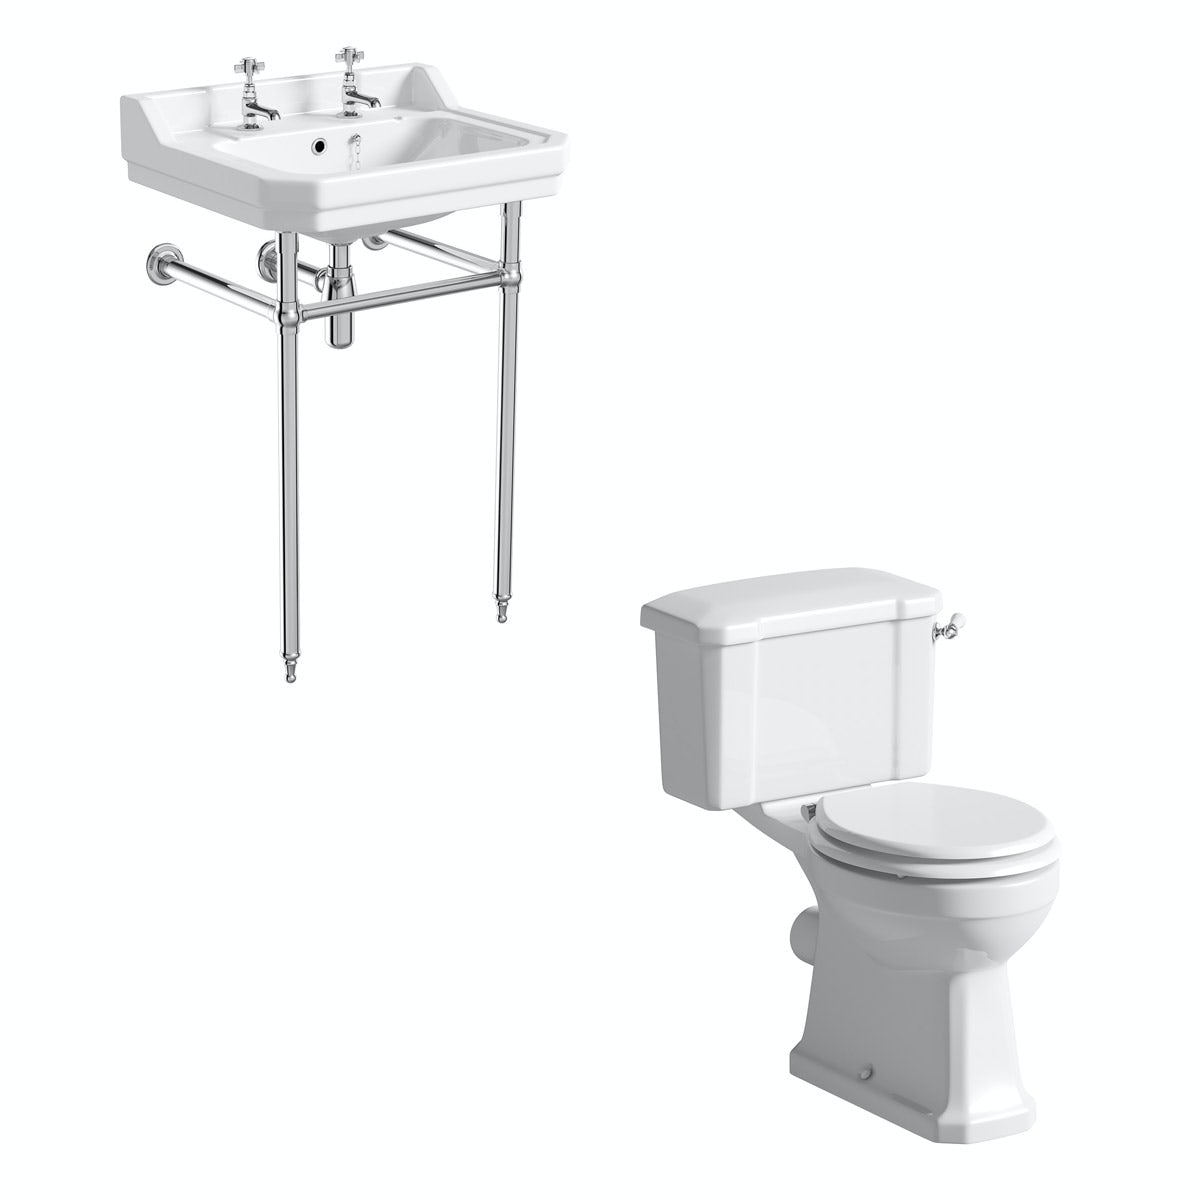 The Bath Co. Camberley cloakroom suite with white seat, washstand and basin 610mm